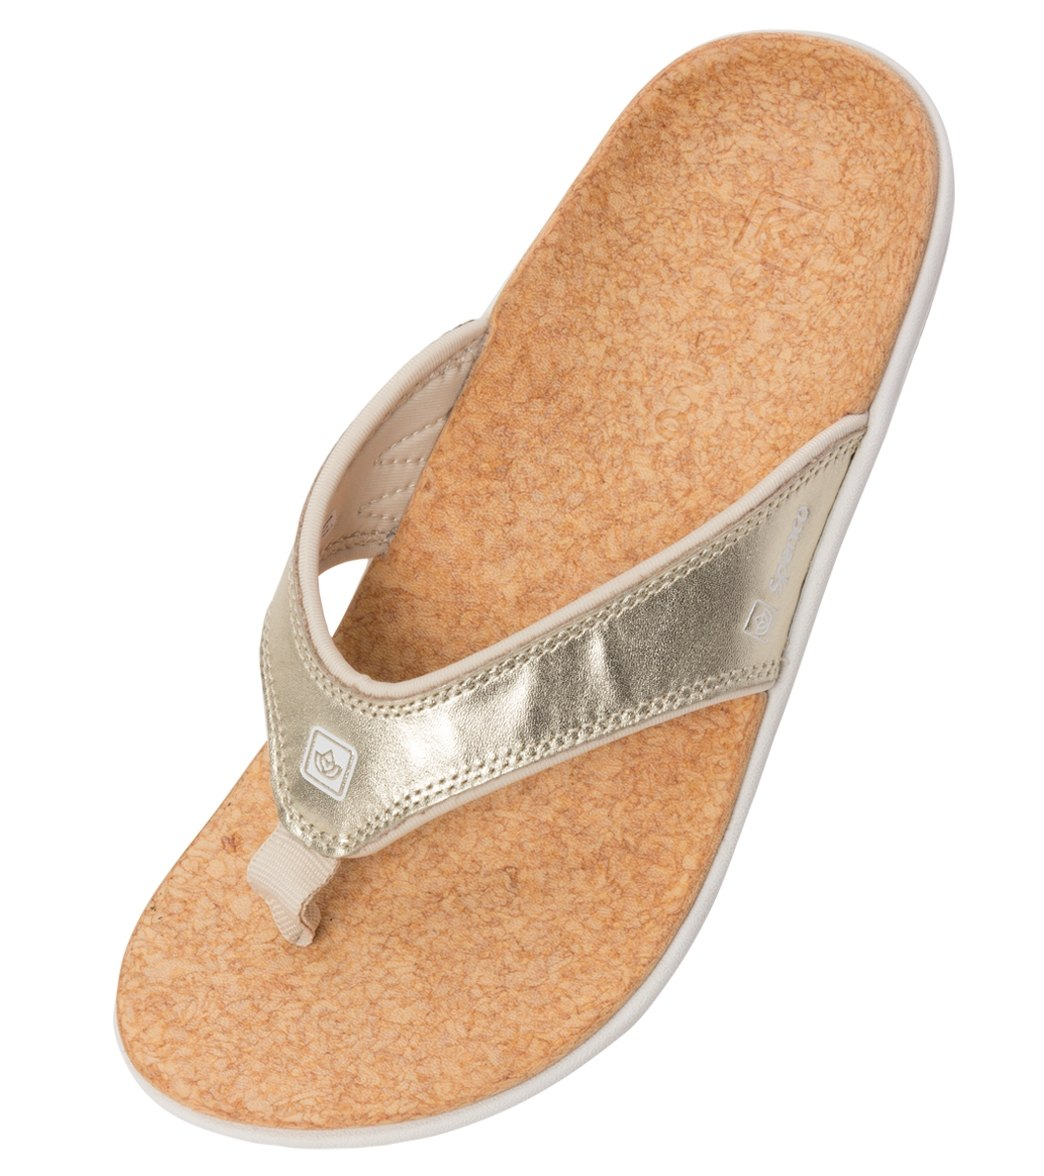 ba0c68181027 Spenco Women s Yumi Metallic Flip Flop at SwimOutlet.com - Free Shipping